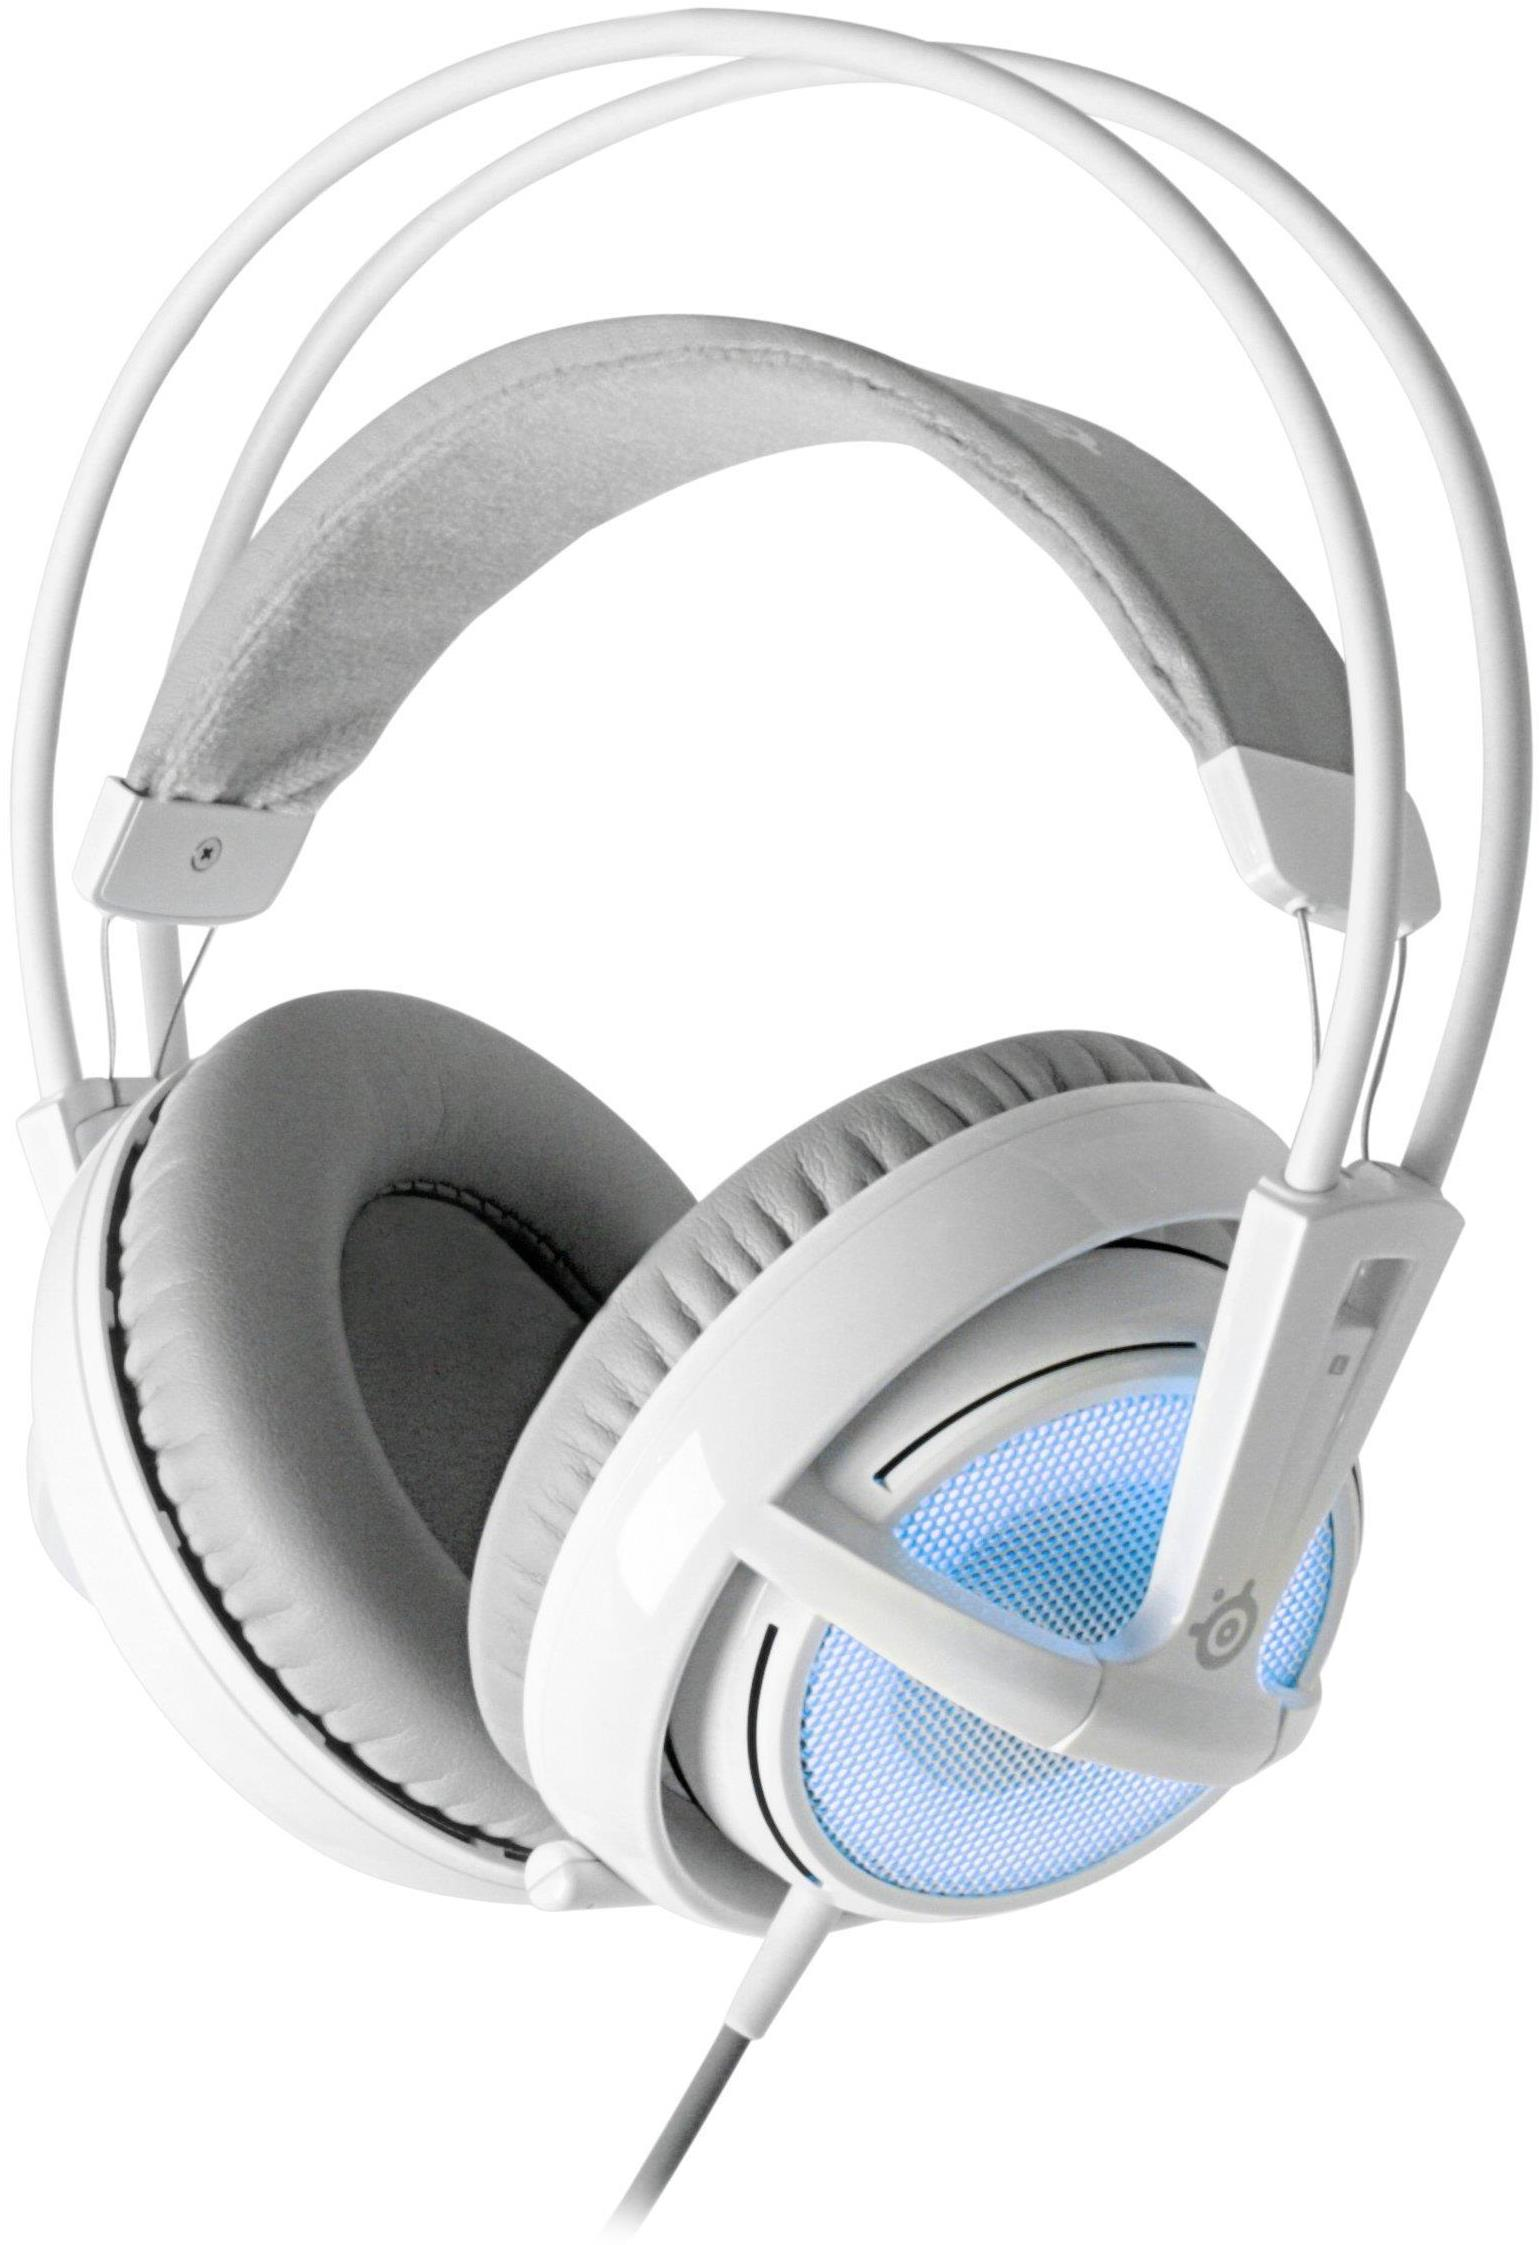 Steelseries Siberia V2 Frost Blue Edition USB Headset